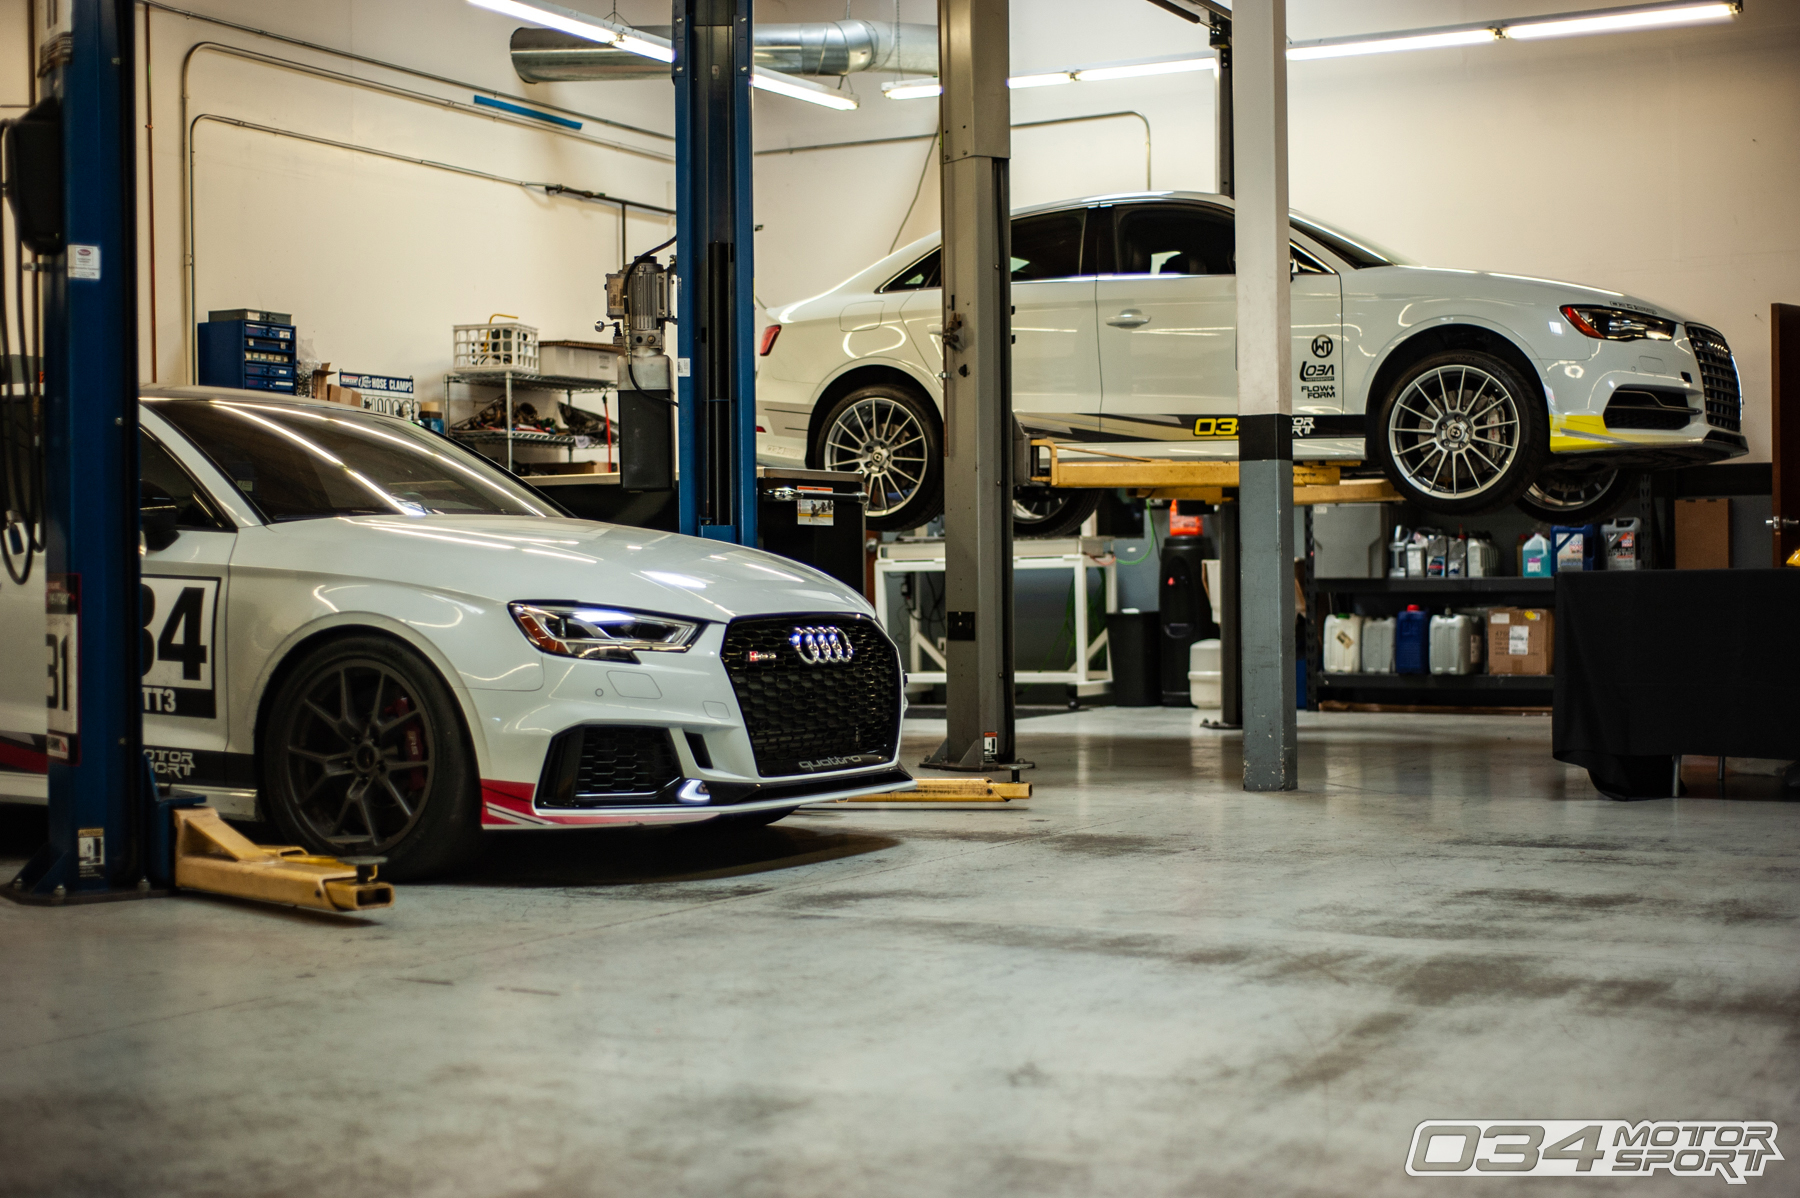 8V Audi RS3 and S3 Development Vehicles in 034Motorsport Service Department